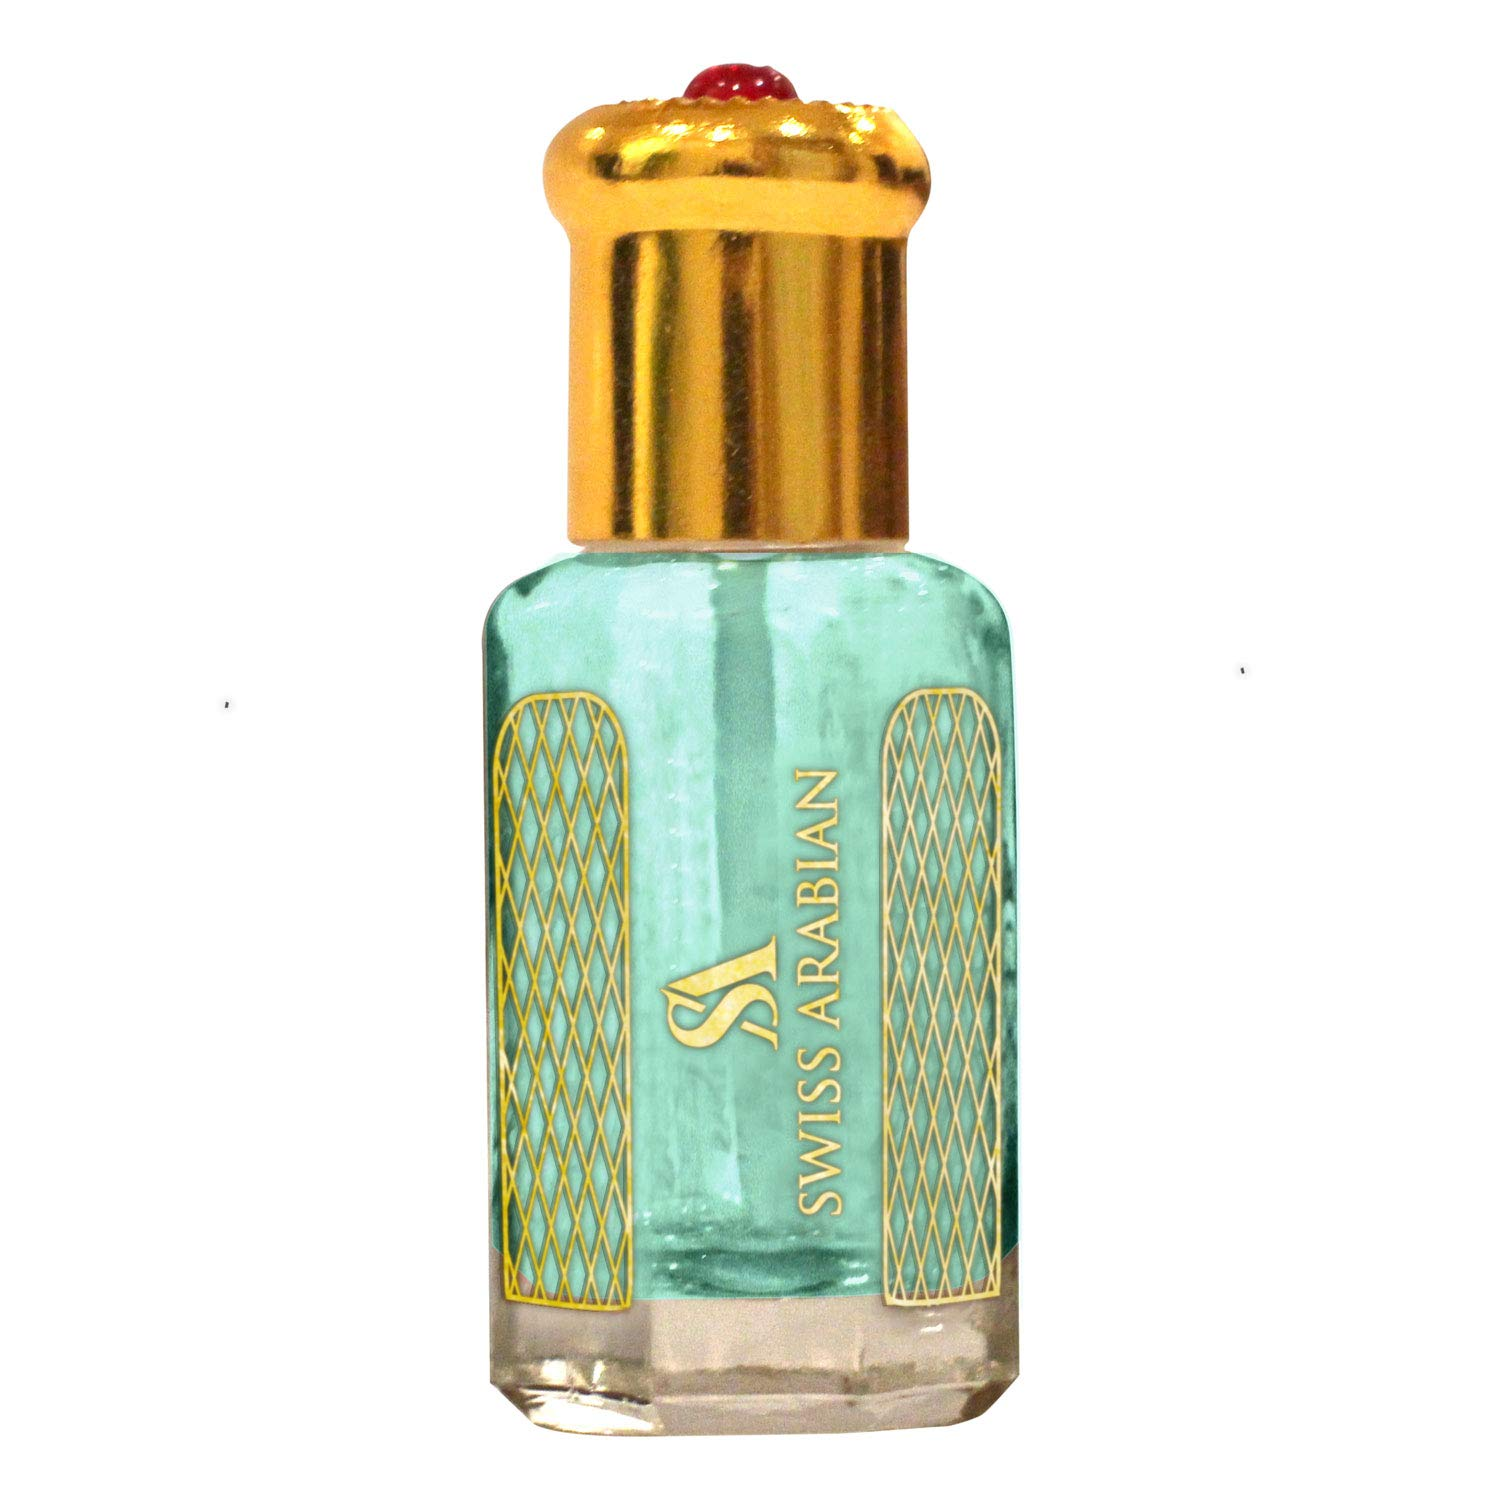 SEA BREEZE 12mL | Artisanal Hand Crafted Perfume Oil Fragrance for Women and for Men | Traditional Attar Style Cologne | by Perfumer Swiss Arabian Oud | Gift/Party Favor | Body Oil